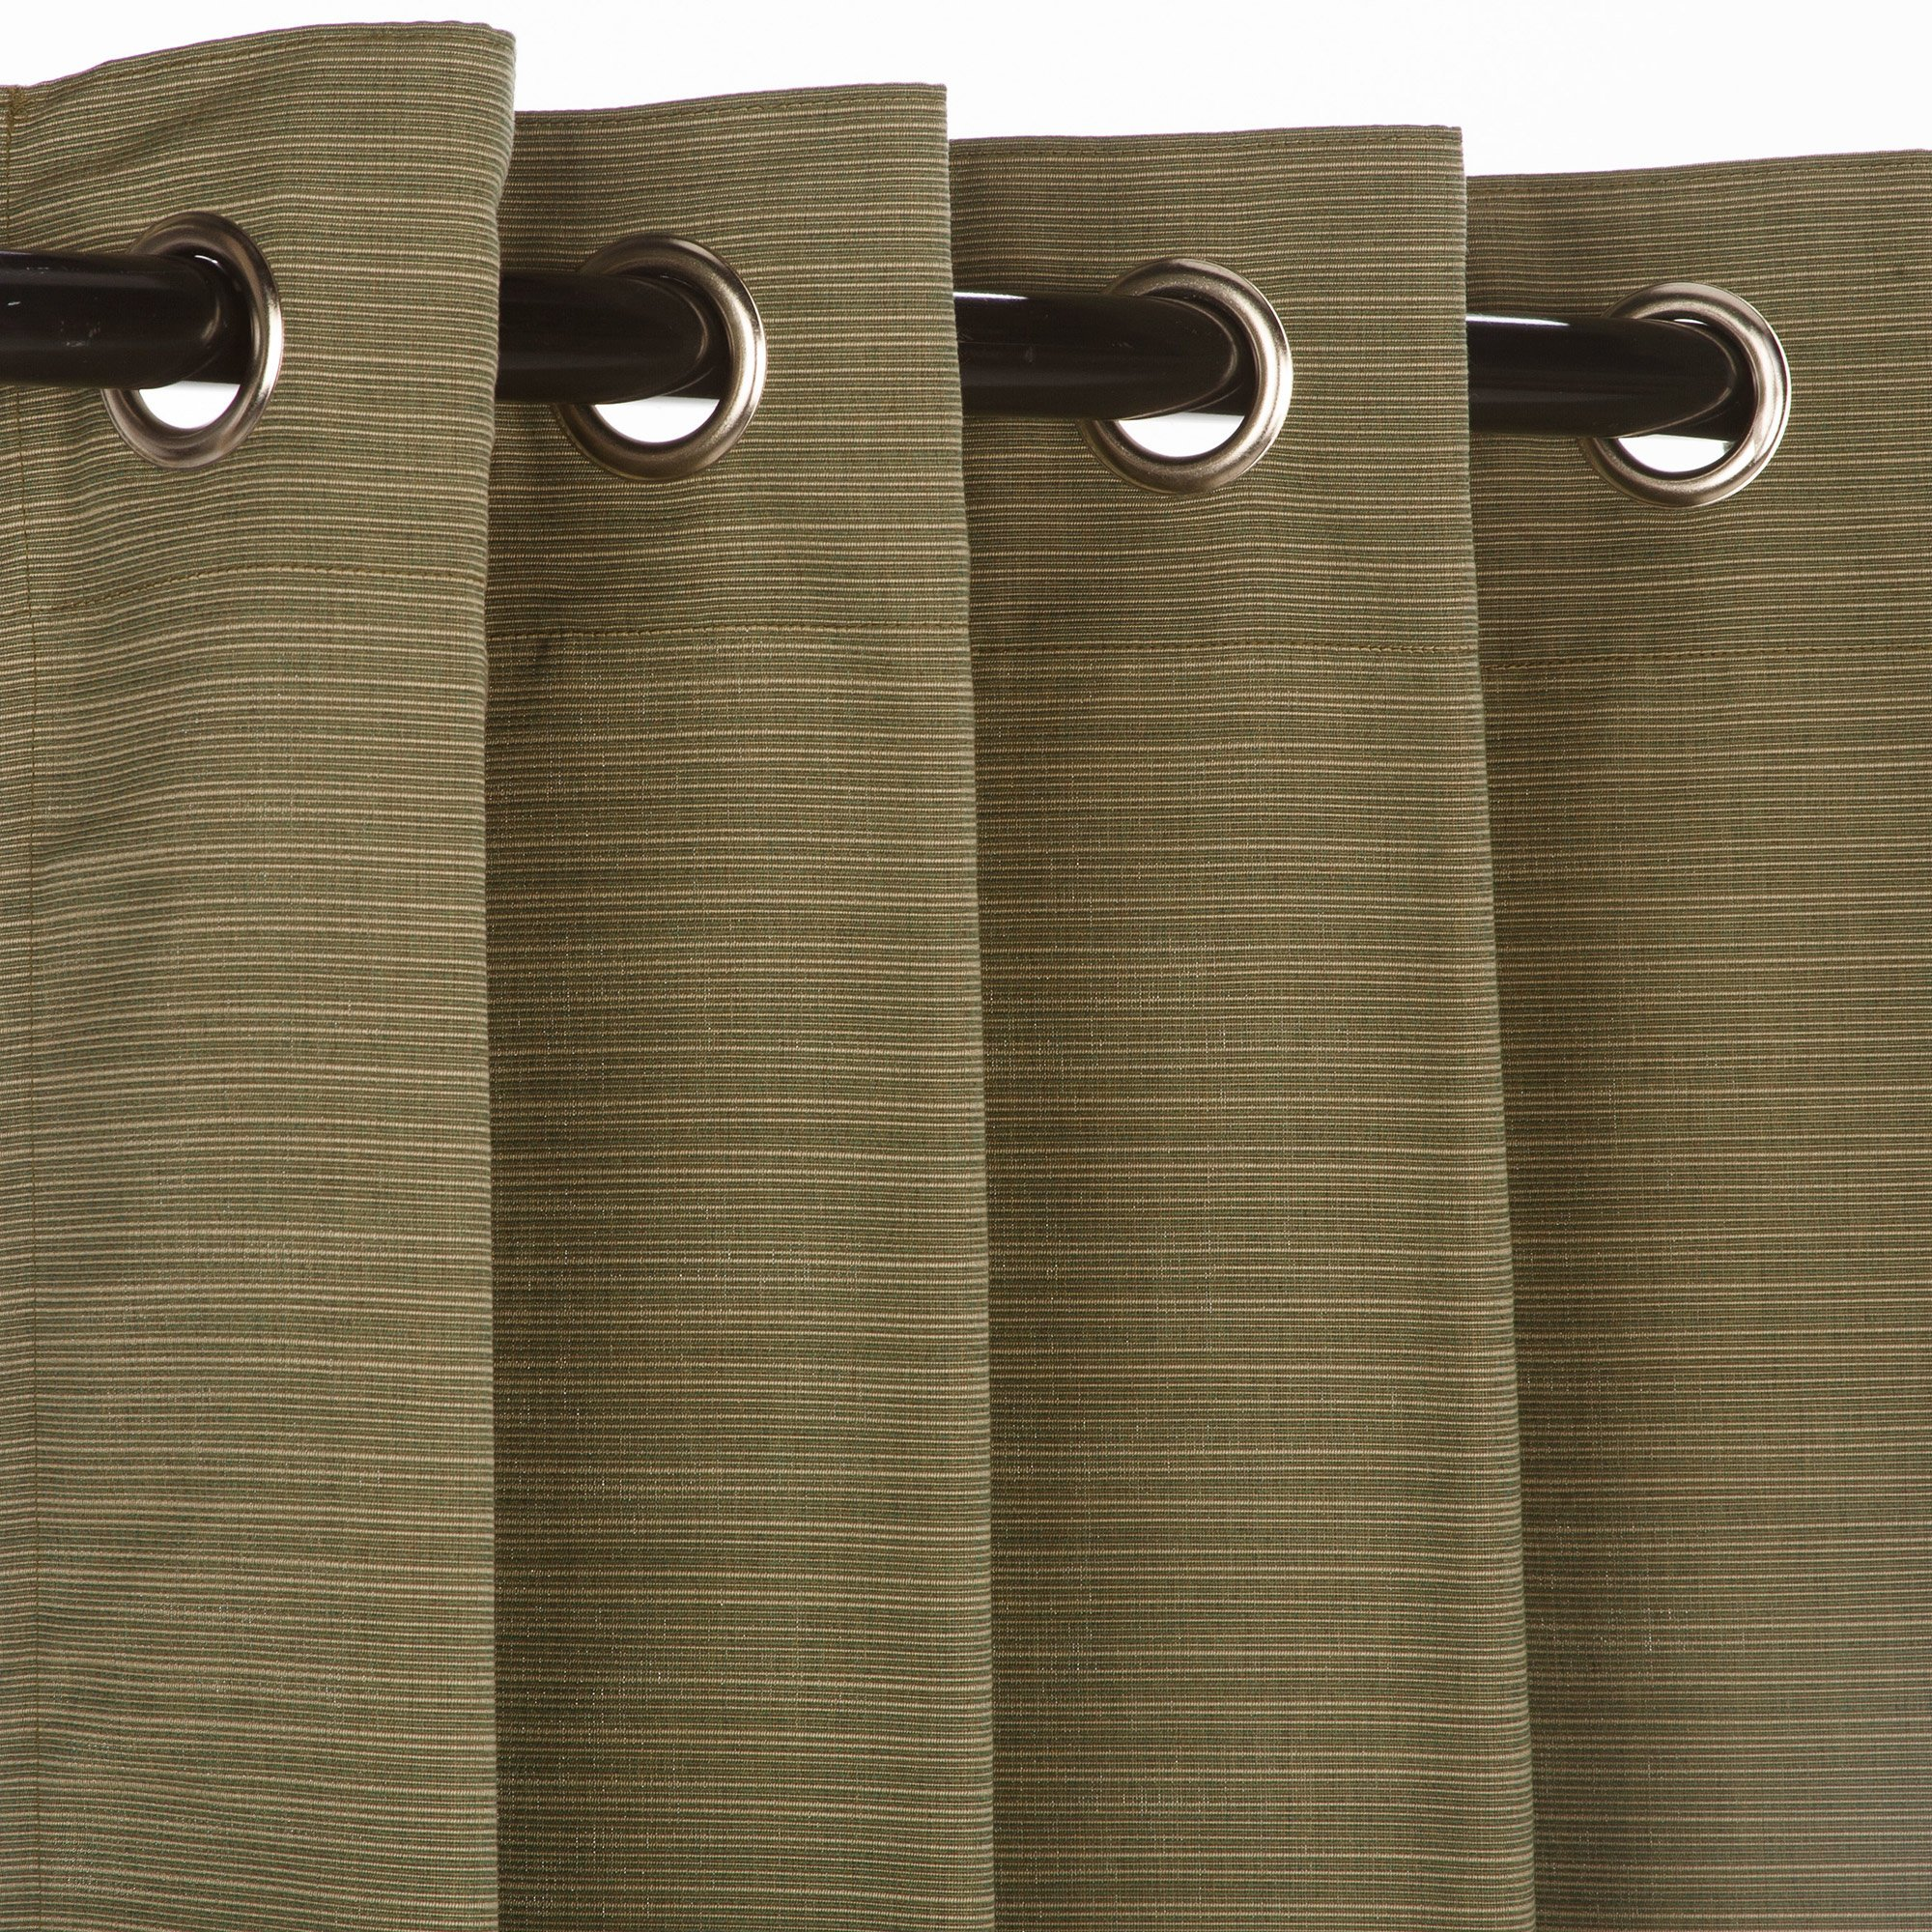 Sunbrella Outdoor Dupione Curtain with Grommets